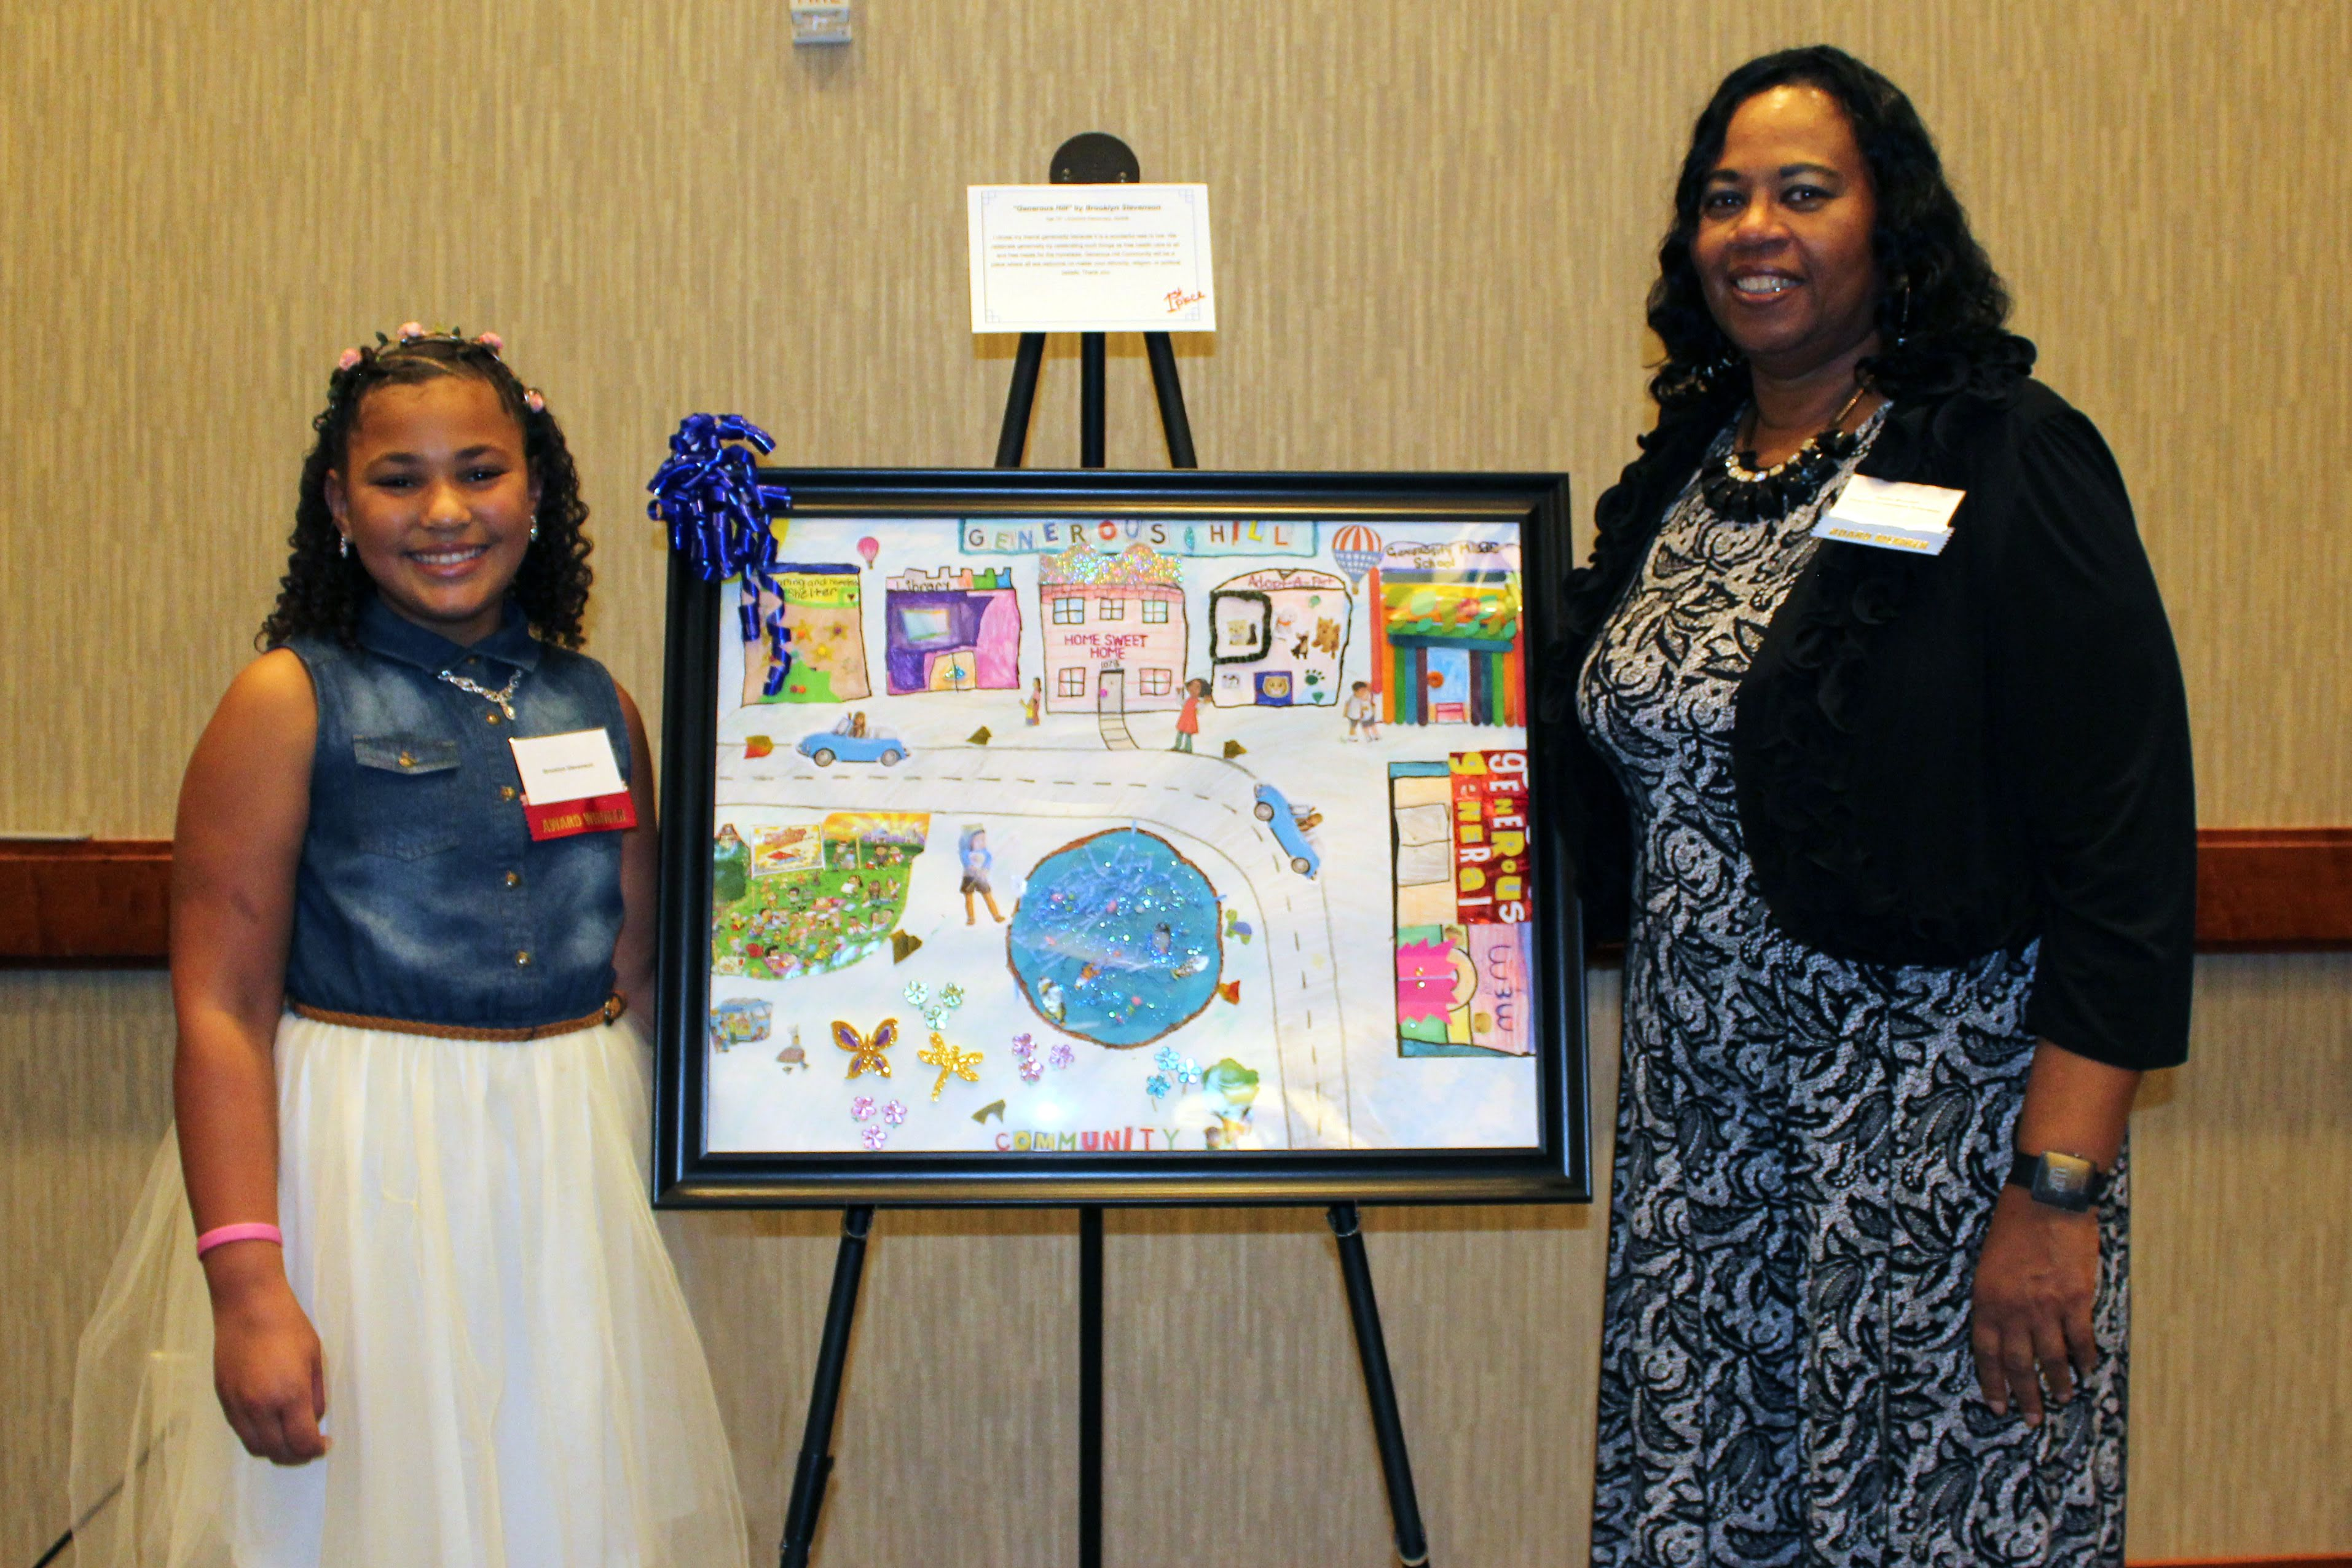 Photo of Brooklyn Stevenson, winner of this year's HRHC Children's Poster Contest, with HRHC Chair, Karen Munden